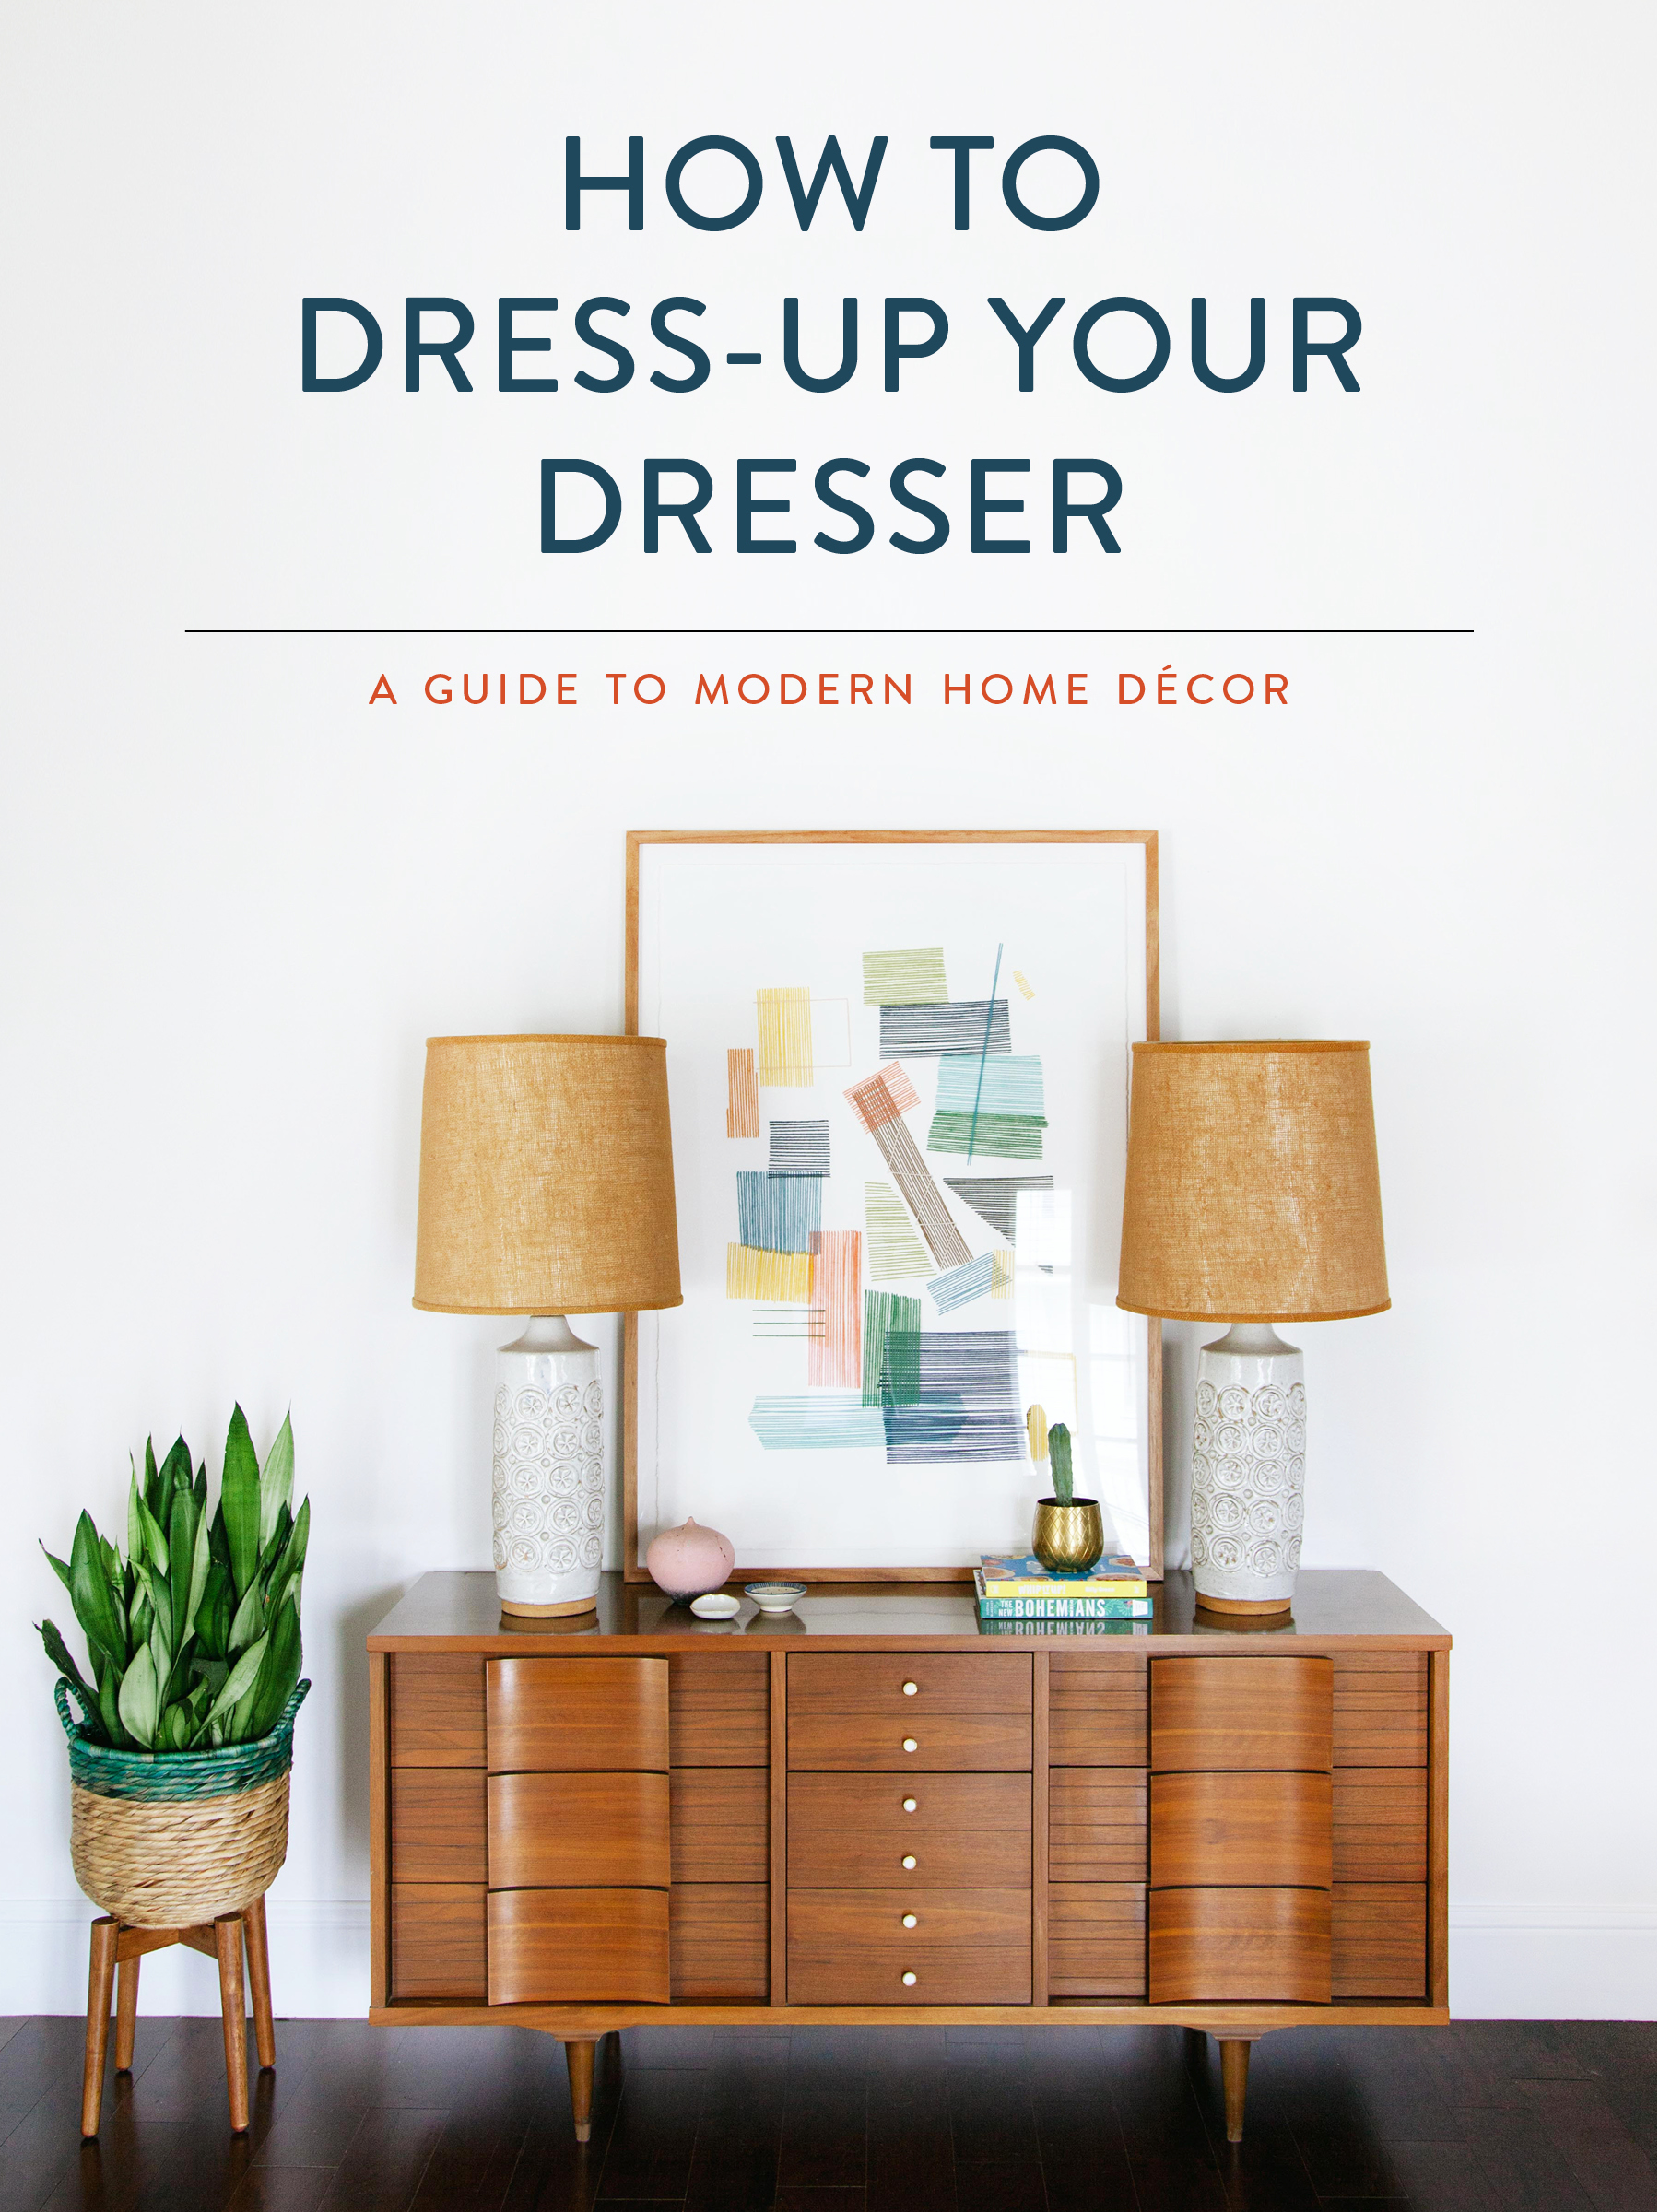 HOW TO DRESS-UP YOUR DRESSER